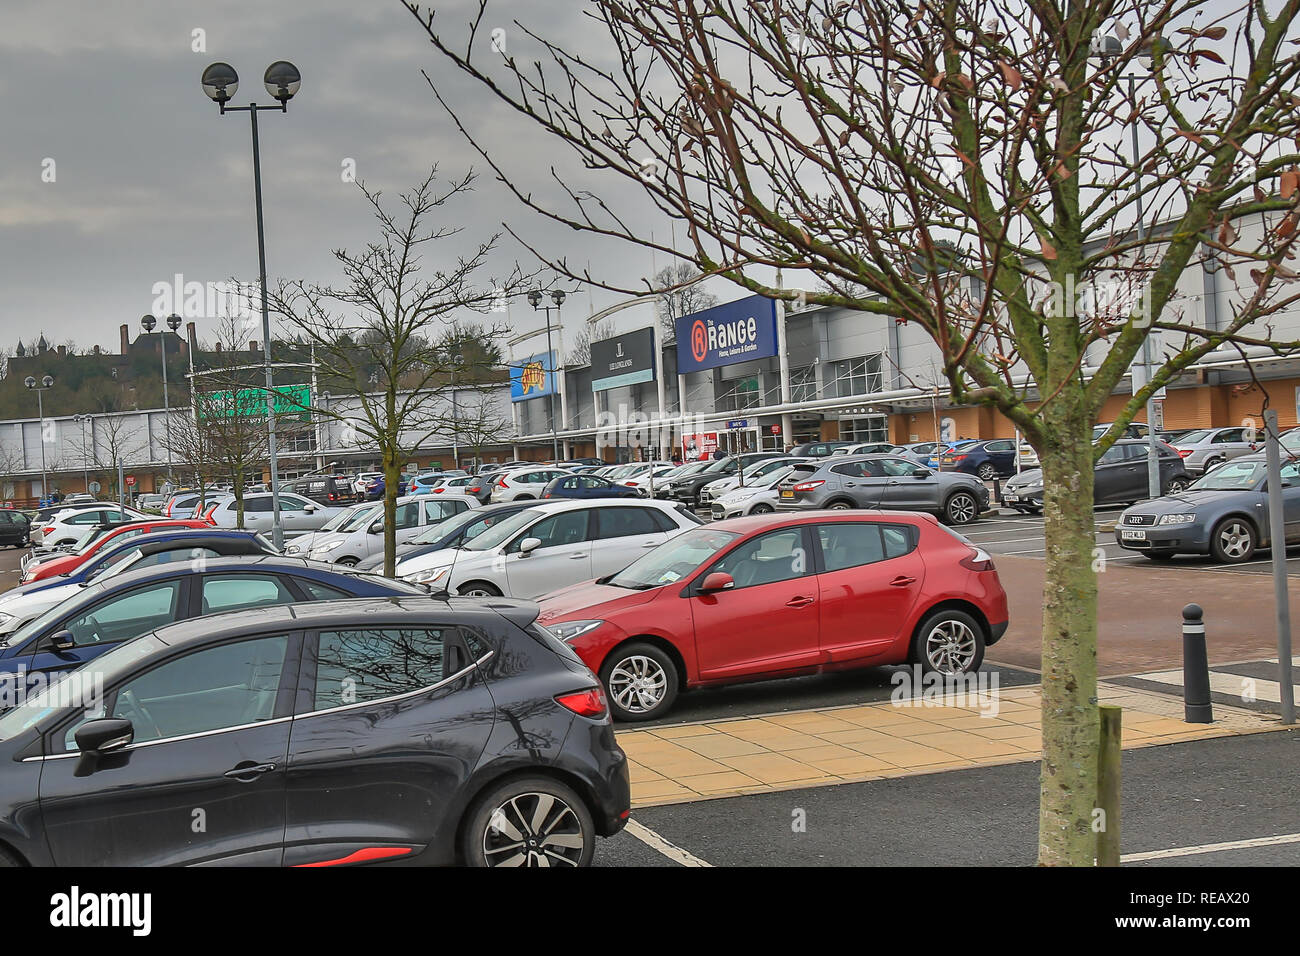 Kidderminster, UK, 21st January, 2019. it may be the third Monday in January, now known as Blue Monday, when spirits are low, credit card bills high, weather gloomy and all those new year resolutions failing fast, yet still the retail car parks are full of shoppers with seemingly endless amounts of money to spend. Credit: Lee Hudson/Alamy Live News - Stock Image